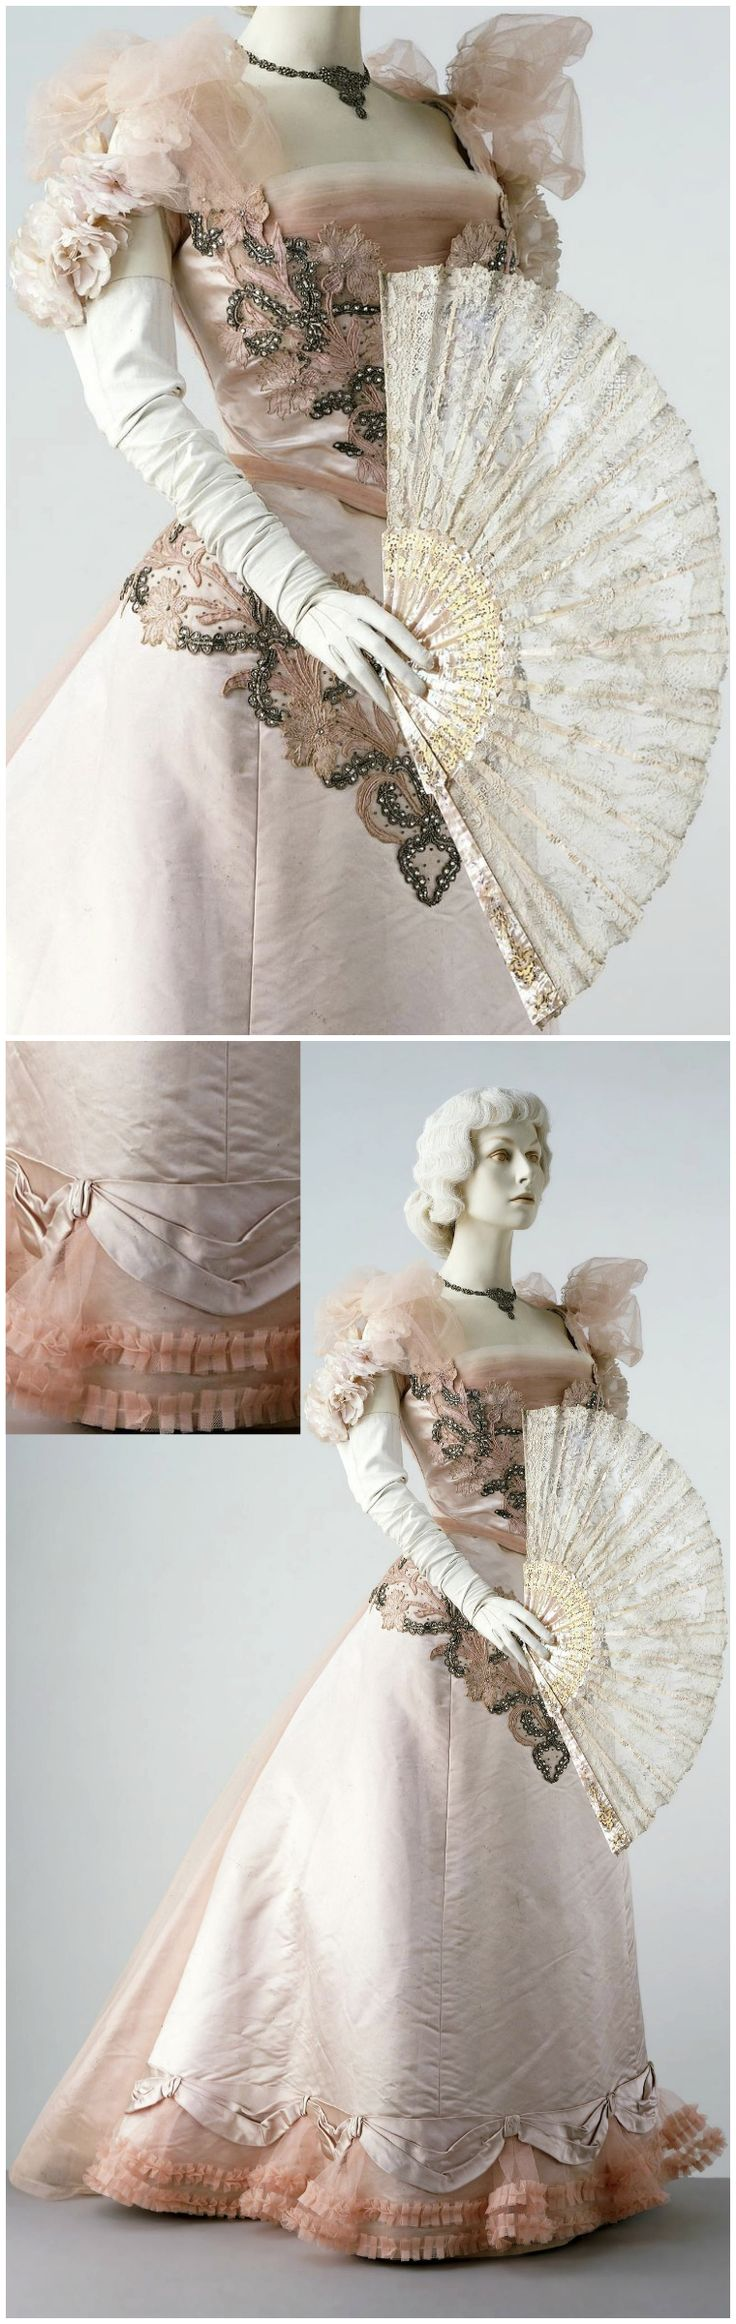 Evening dress of satin and tulle, possibly designed by Charles Frederick Worth…